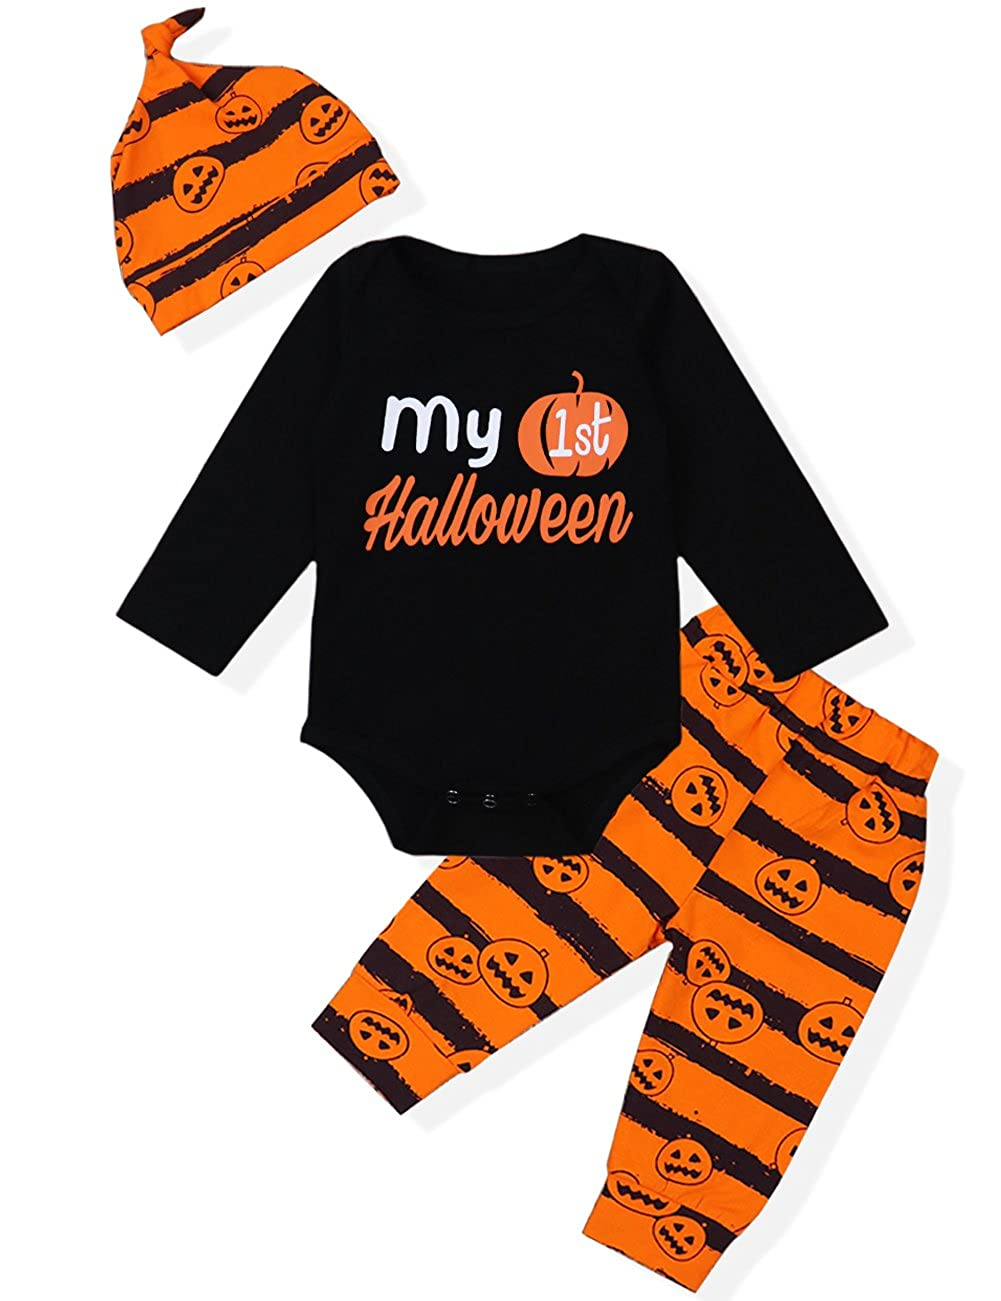 3Pcs My First Halloween Stripe Outfit Set Baby Boys Girls Cute Romper Clothing Set